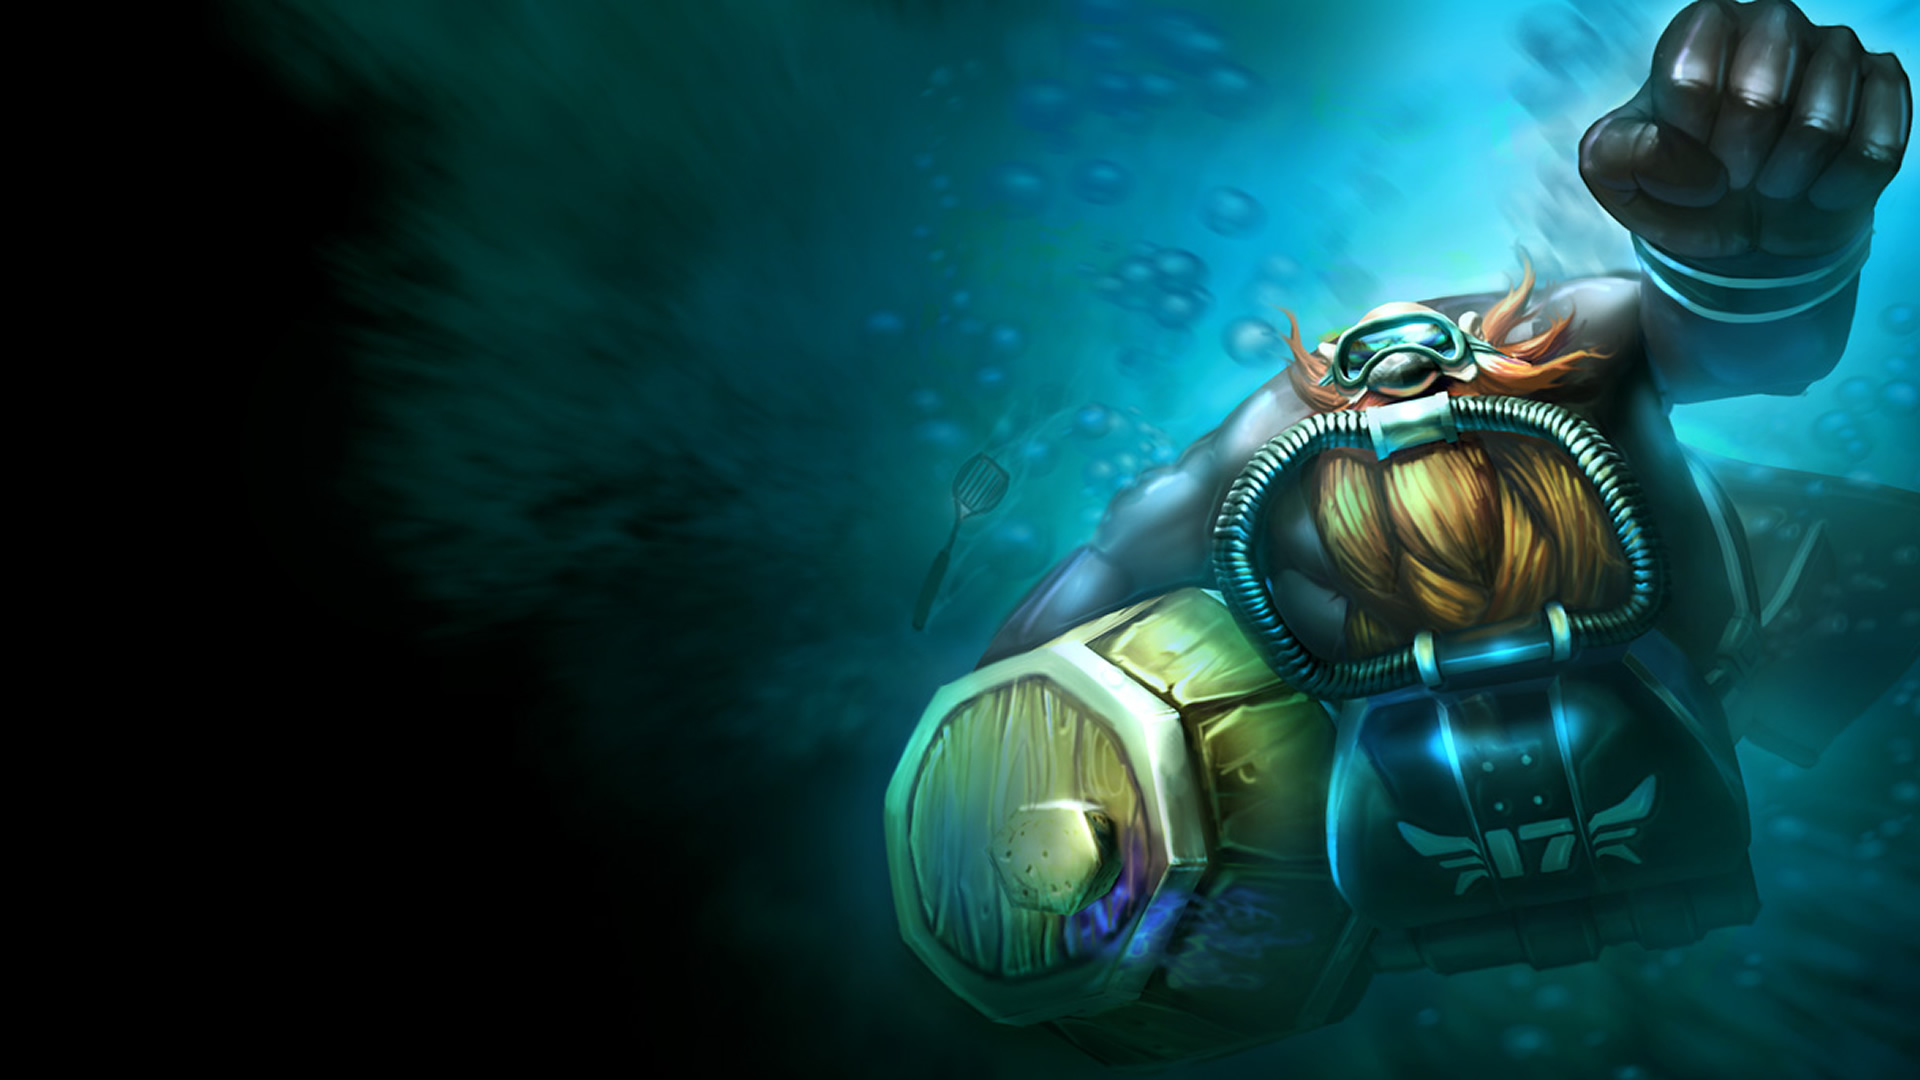 Scuba Gragas Wallpaper   LeagueSplash 1920x1080